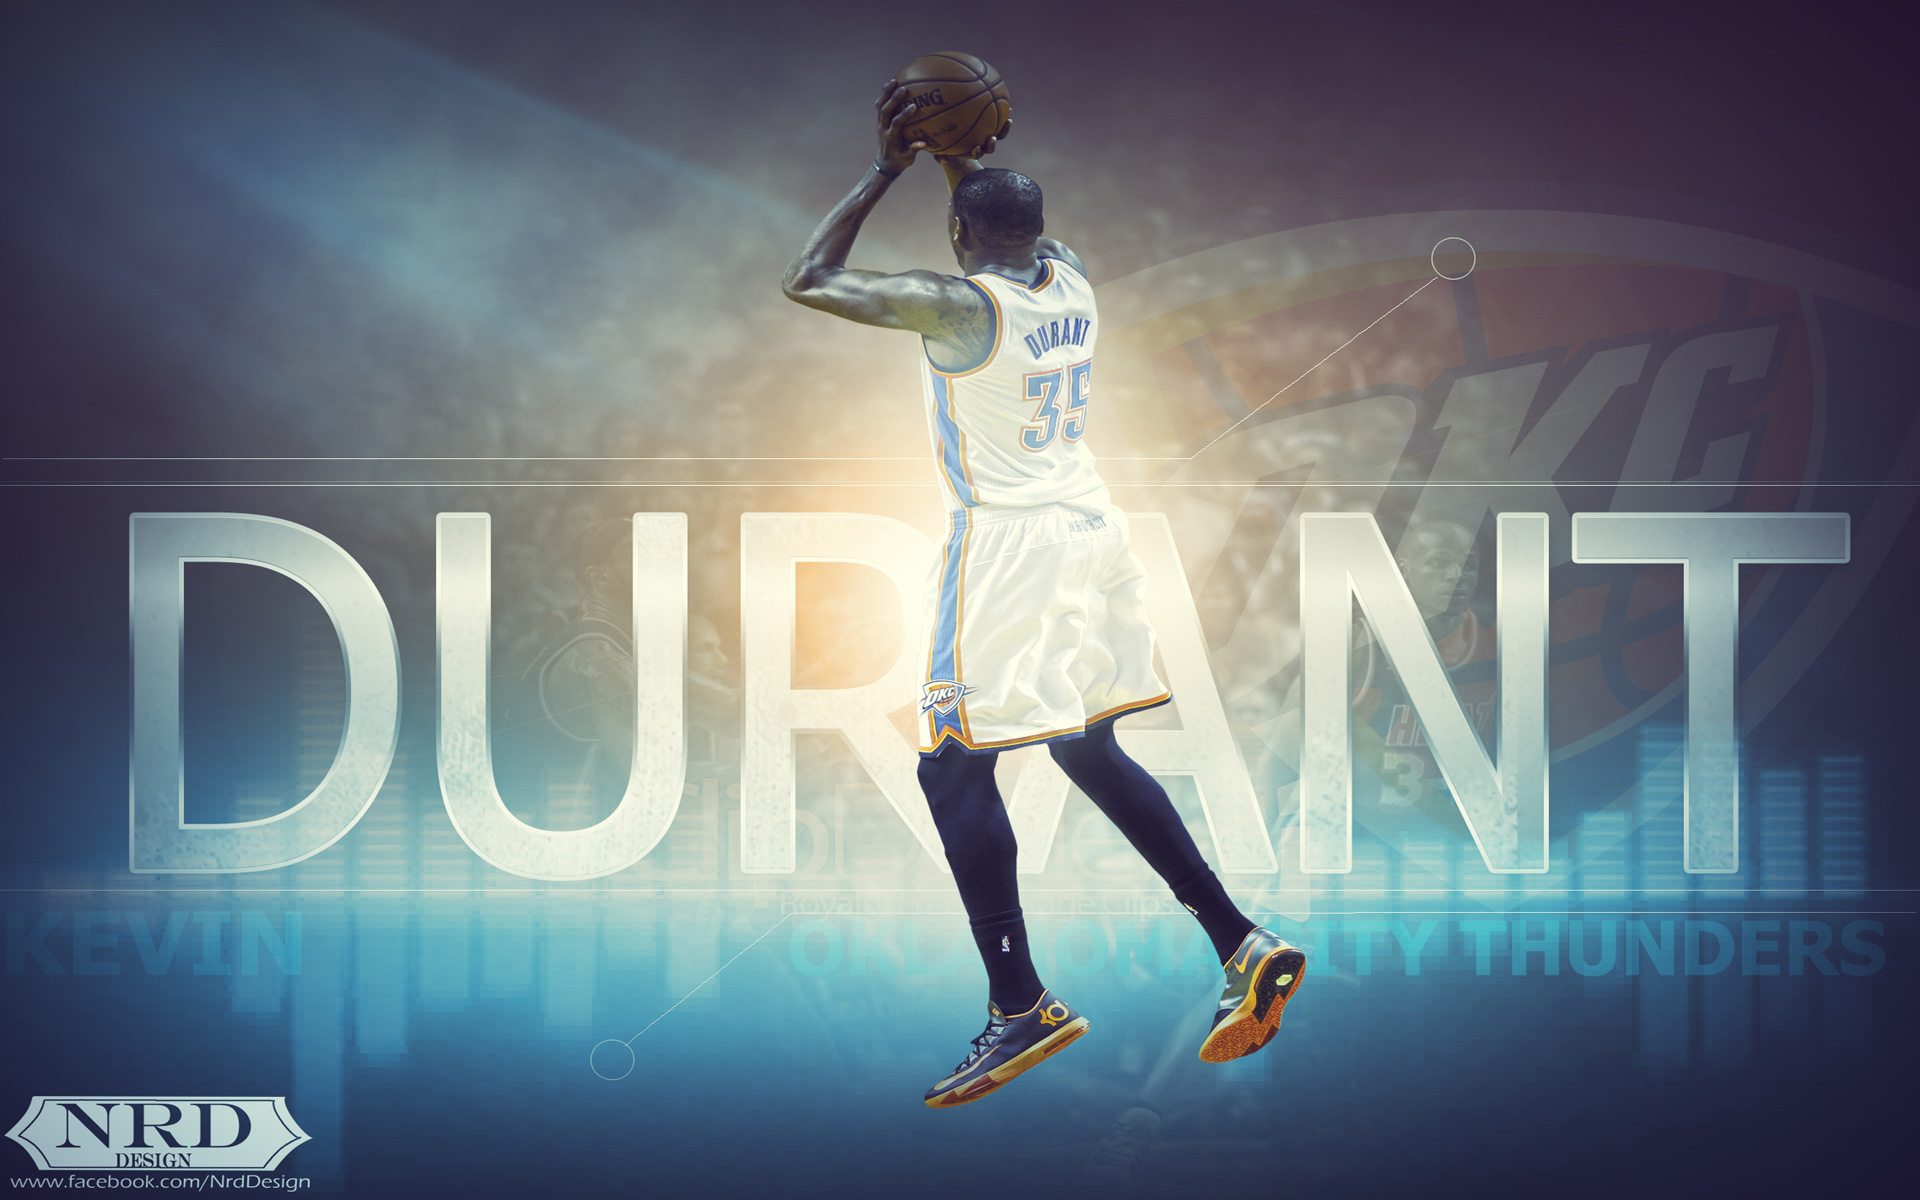 Kevin Durant Wallpapers Basketball Wallpapers at 1920x1200